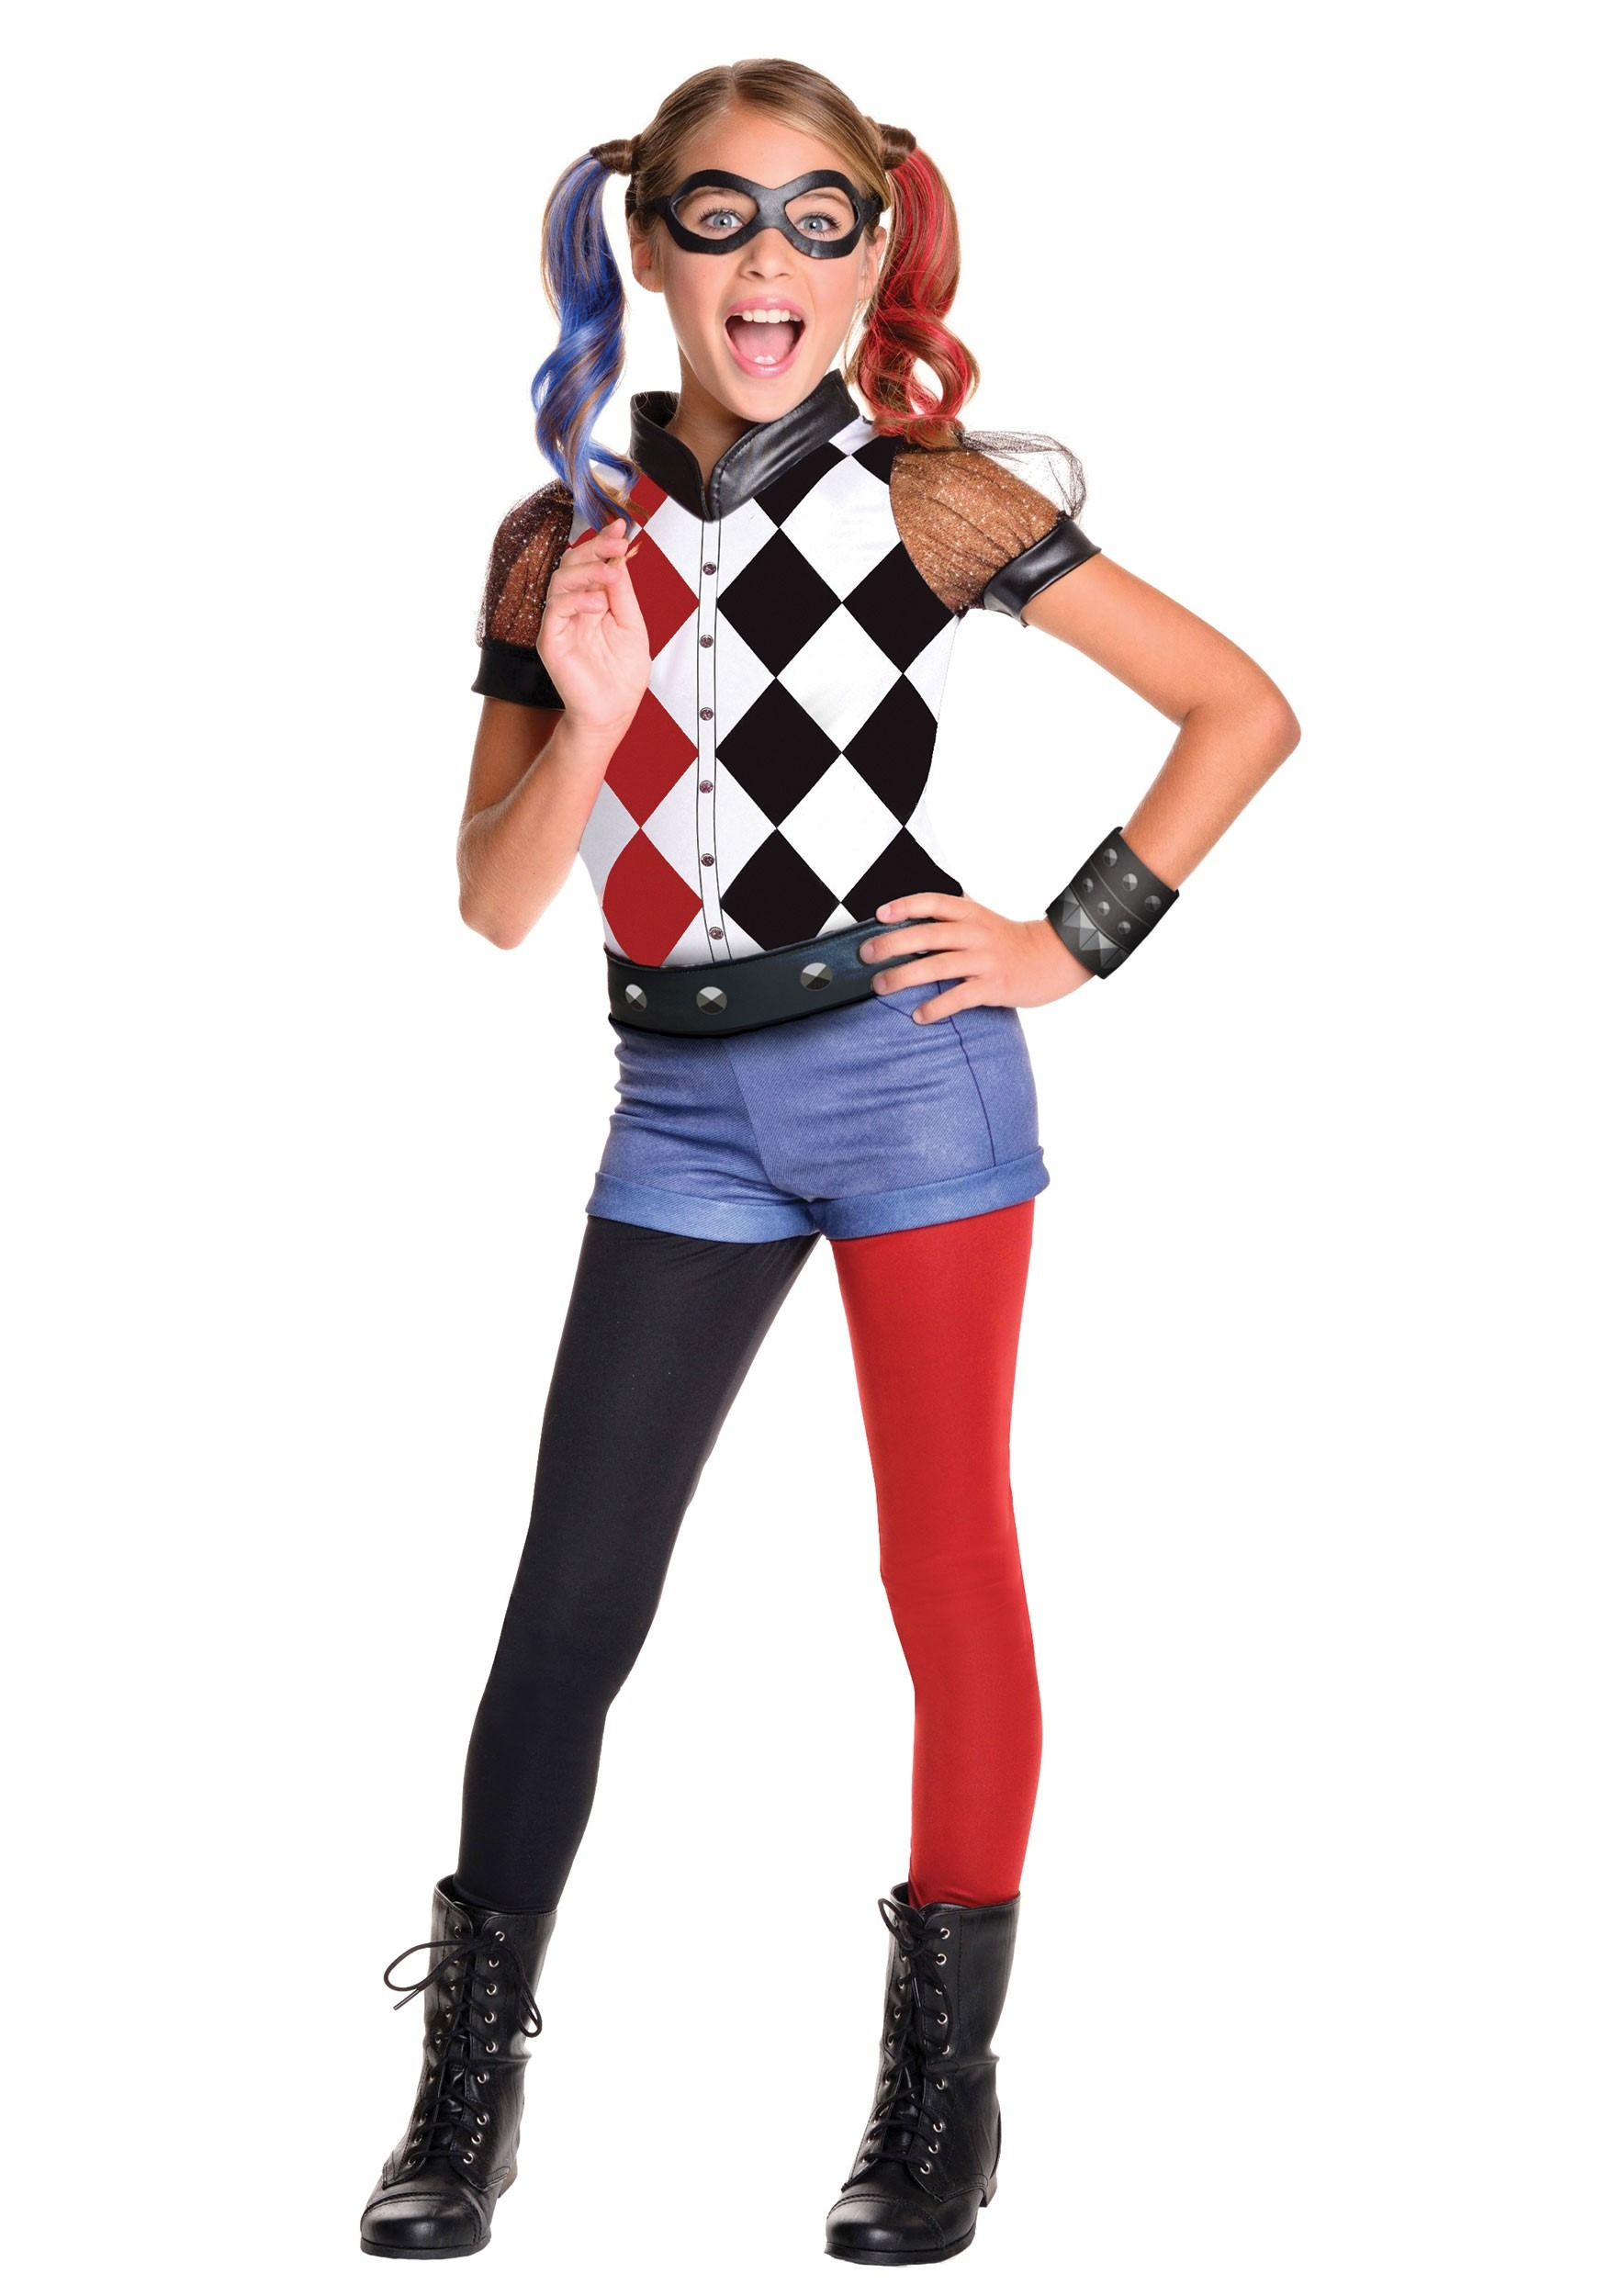 DC Superhero Girls Deluxe Harley Quinn Costume  sc 1 st  Halloween Costumes & Batman Costumes u0026 Suits For Halloween - HalloweenCostumes.com